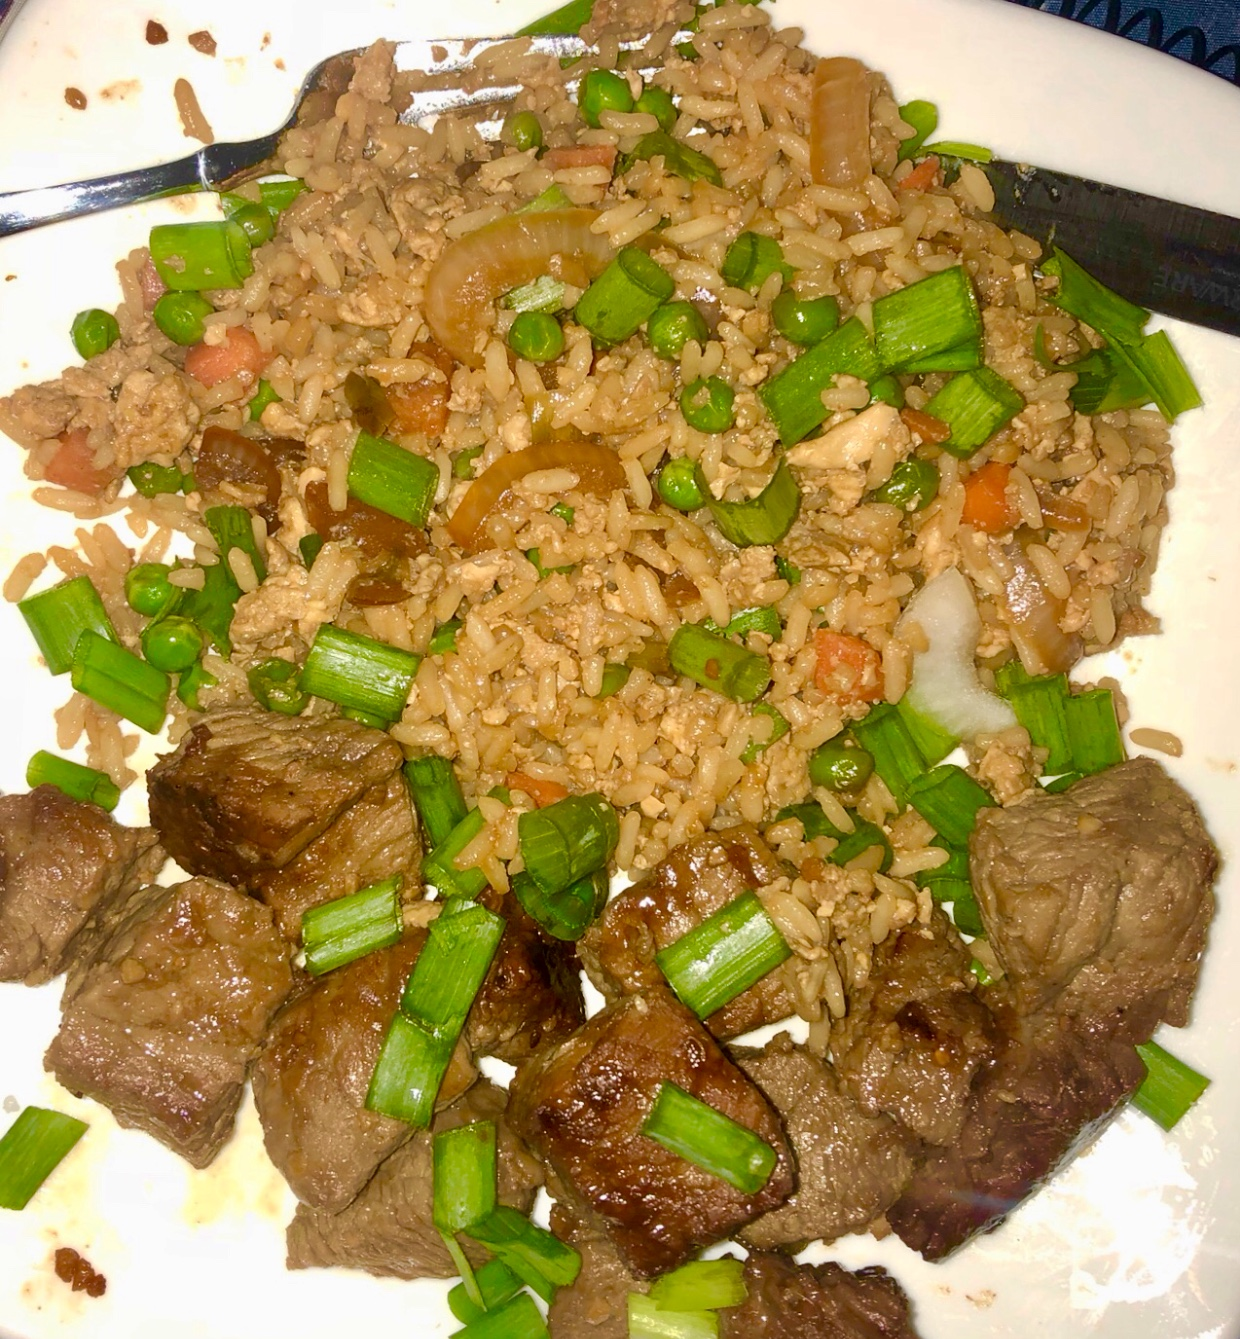 Steak bites are sitting on a white plate with fried rice.